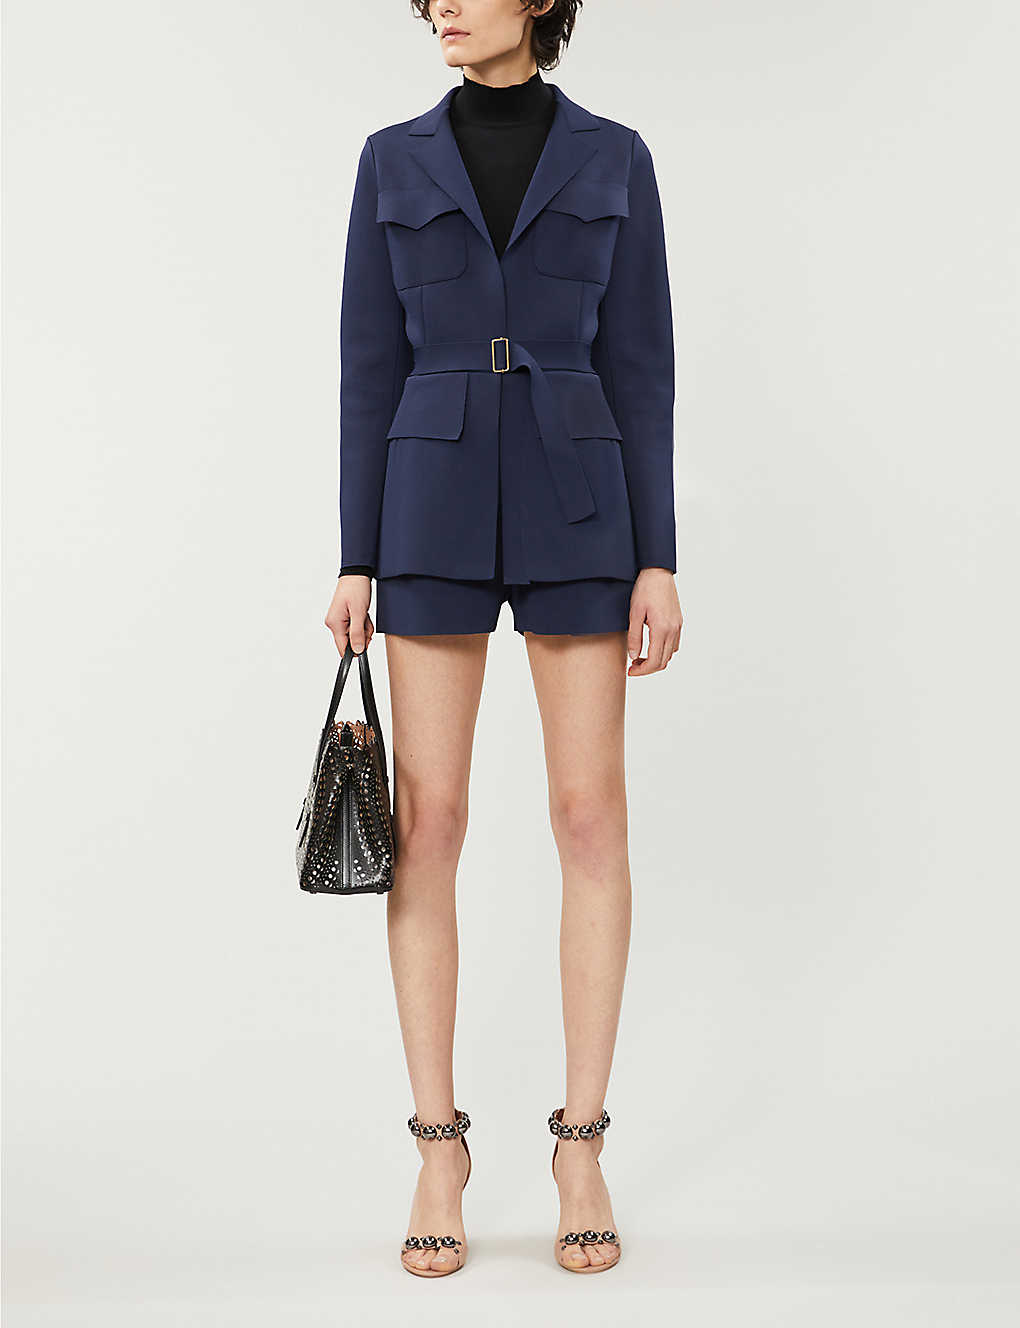 AZZEDINE ALAIA: Tailored stretch-knit blazer